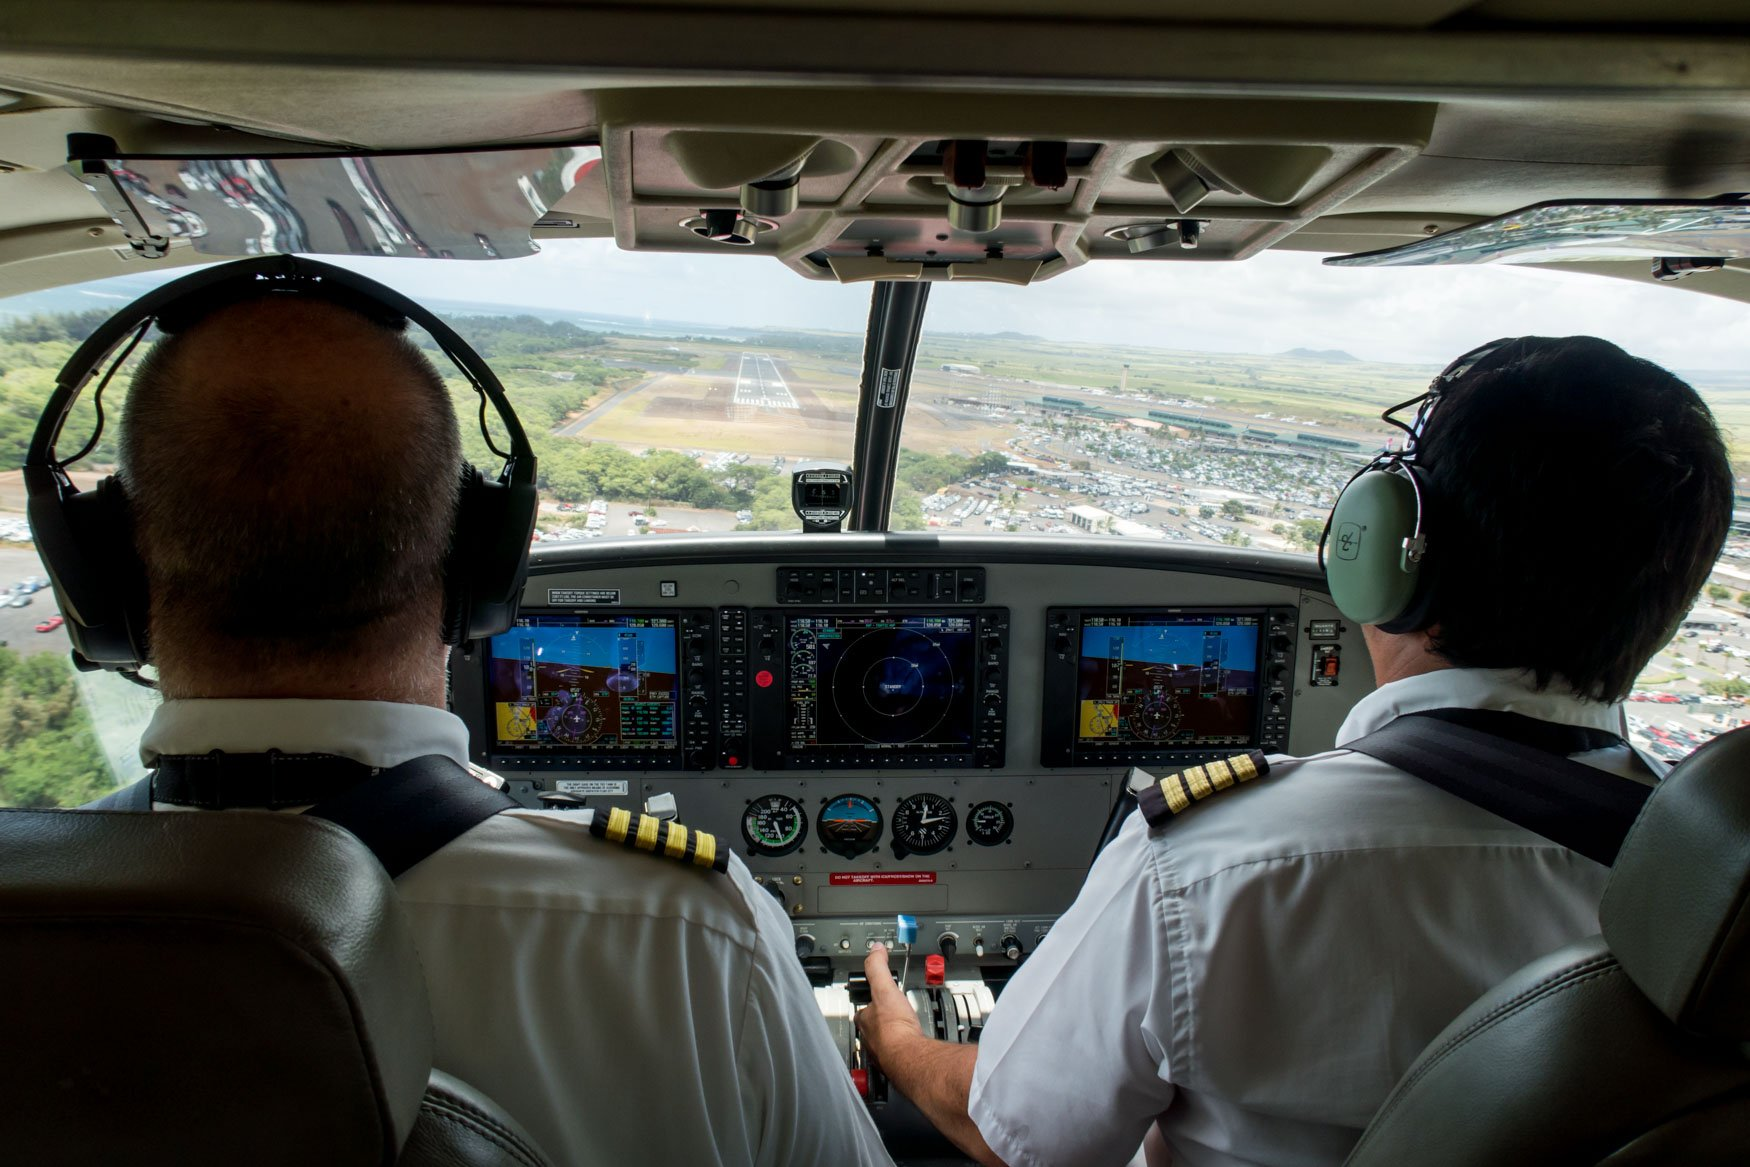 Approaching Kahului Airport